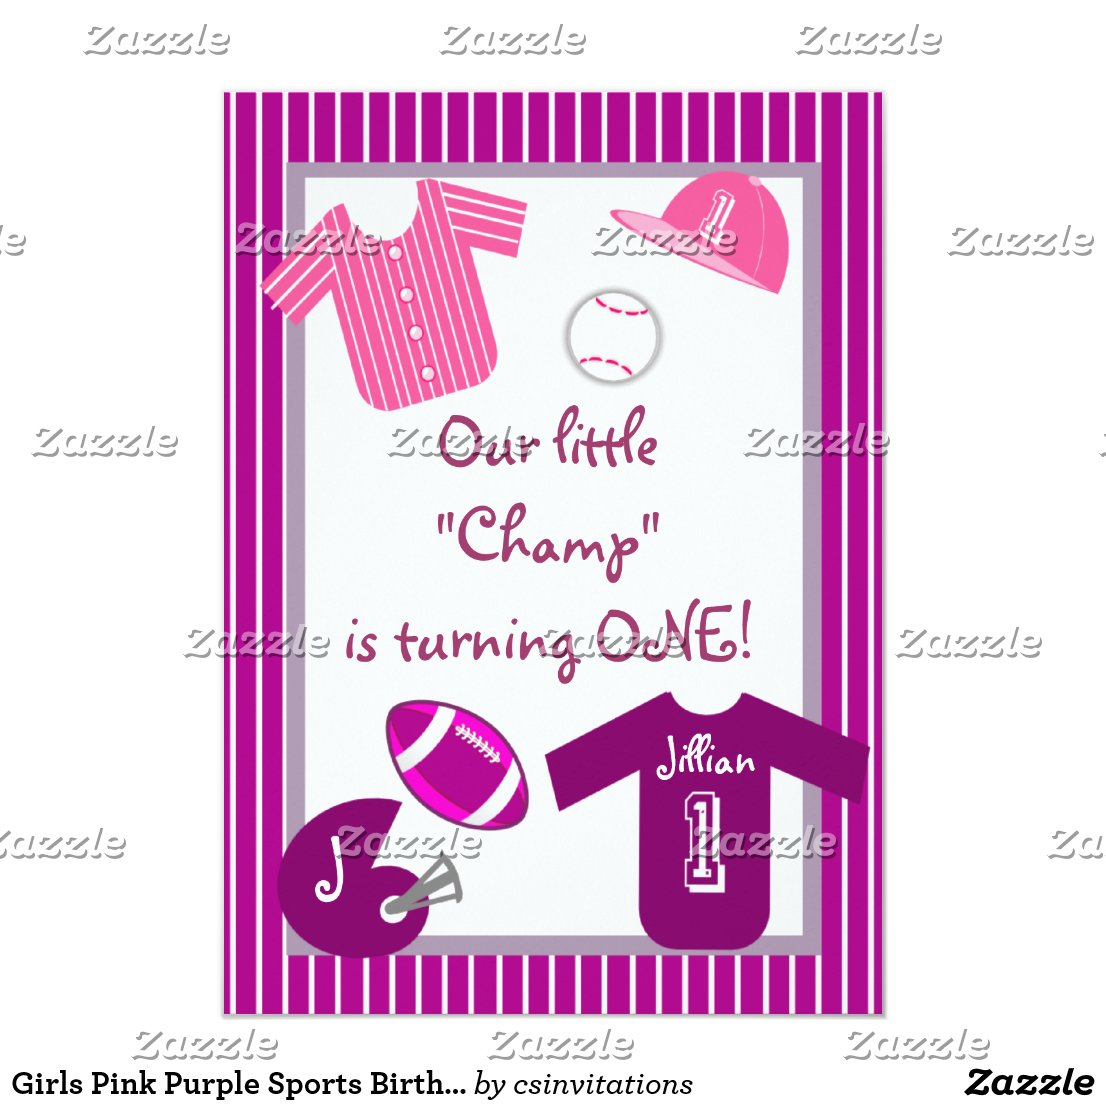 Girls Pink Purple Sports Birthday Party Invitation